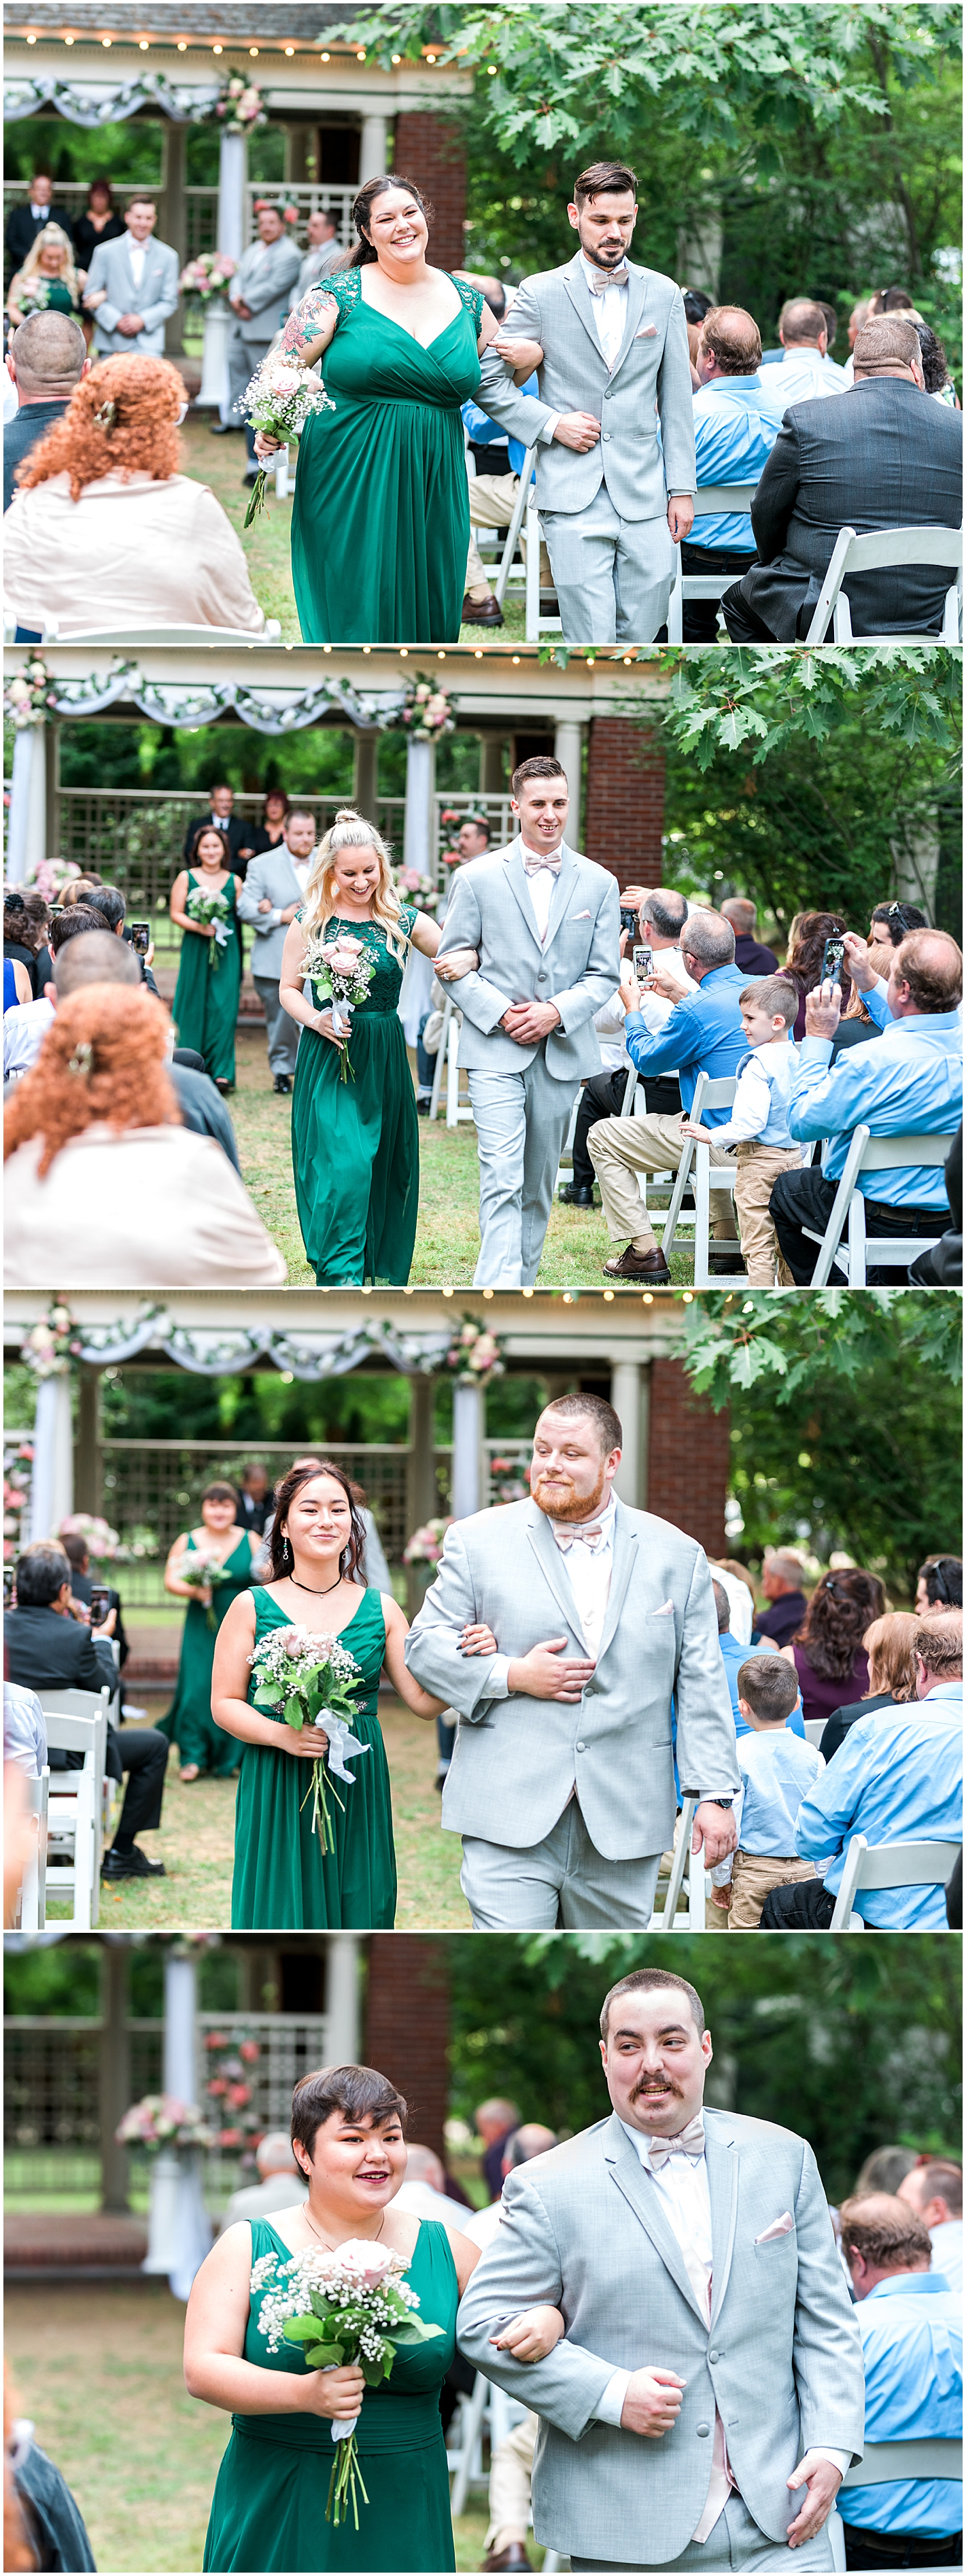 Wedding Party walking down aisle Photo by Alyssa Parker Photography